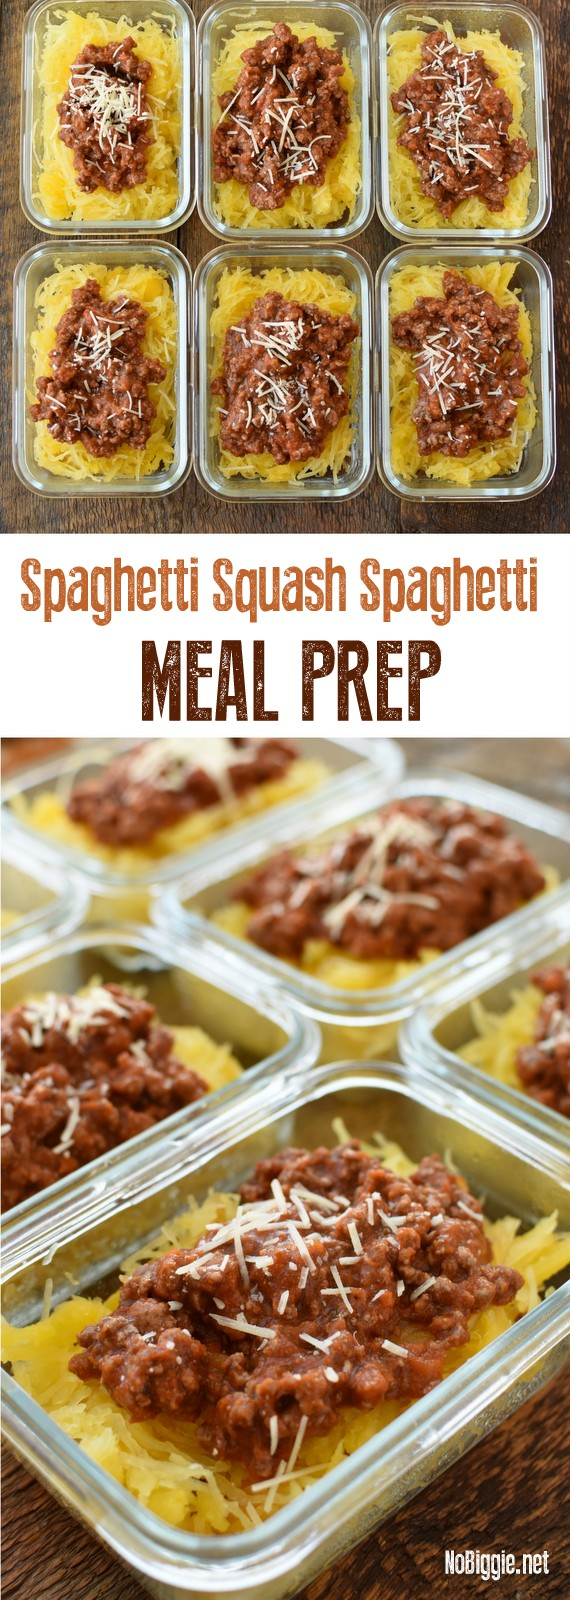 Spaghetti Squash Spaghetti Meal Prep - a healthy meal to get you thru the day! #mealprep #healthyeating #spaghettisquash #squash #mealprepideas